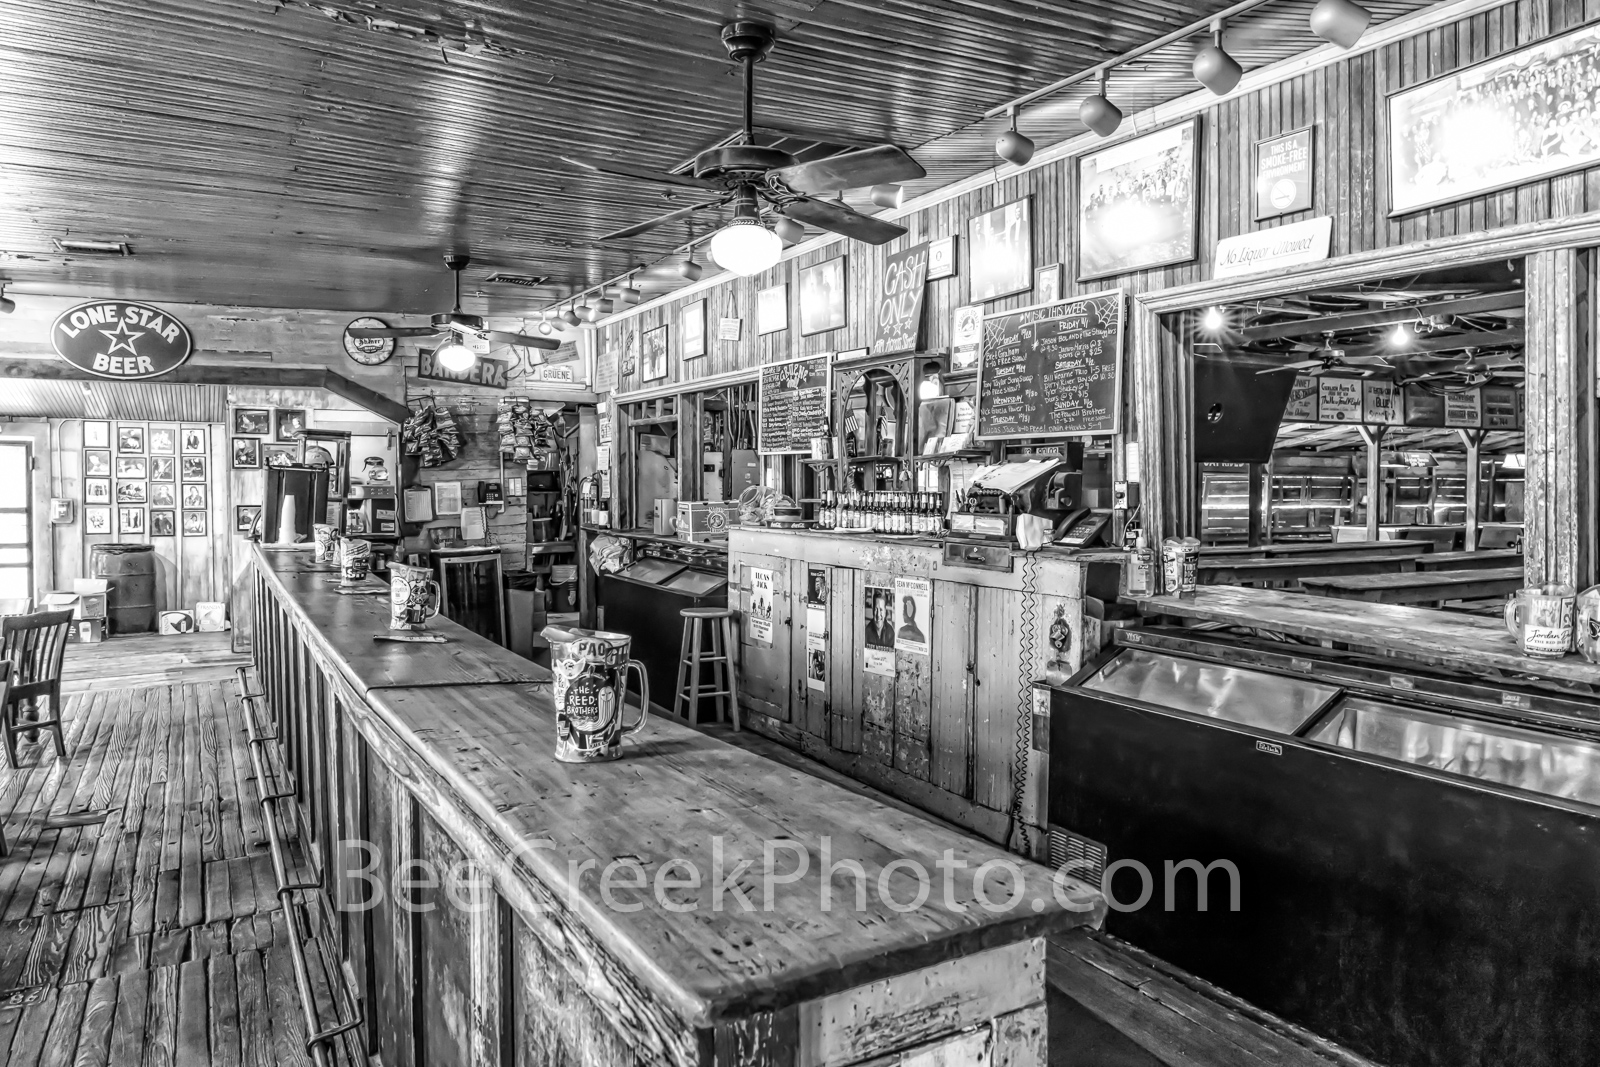 Gruene Hall, B W, black and whtie, gruene saloon, Gruene Texas, dance hall, saloon, town, community, Earnest Gruene, german, german town, Texas, texas hill country, visit, National Register of Histori, photo